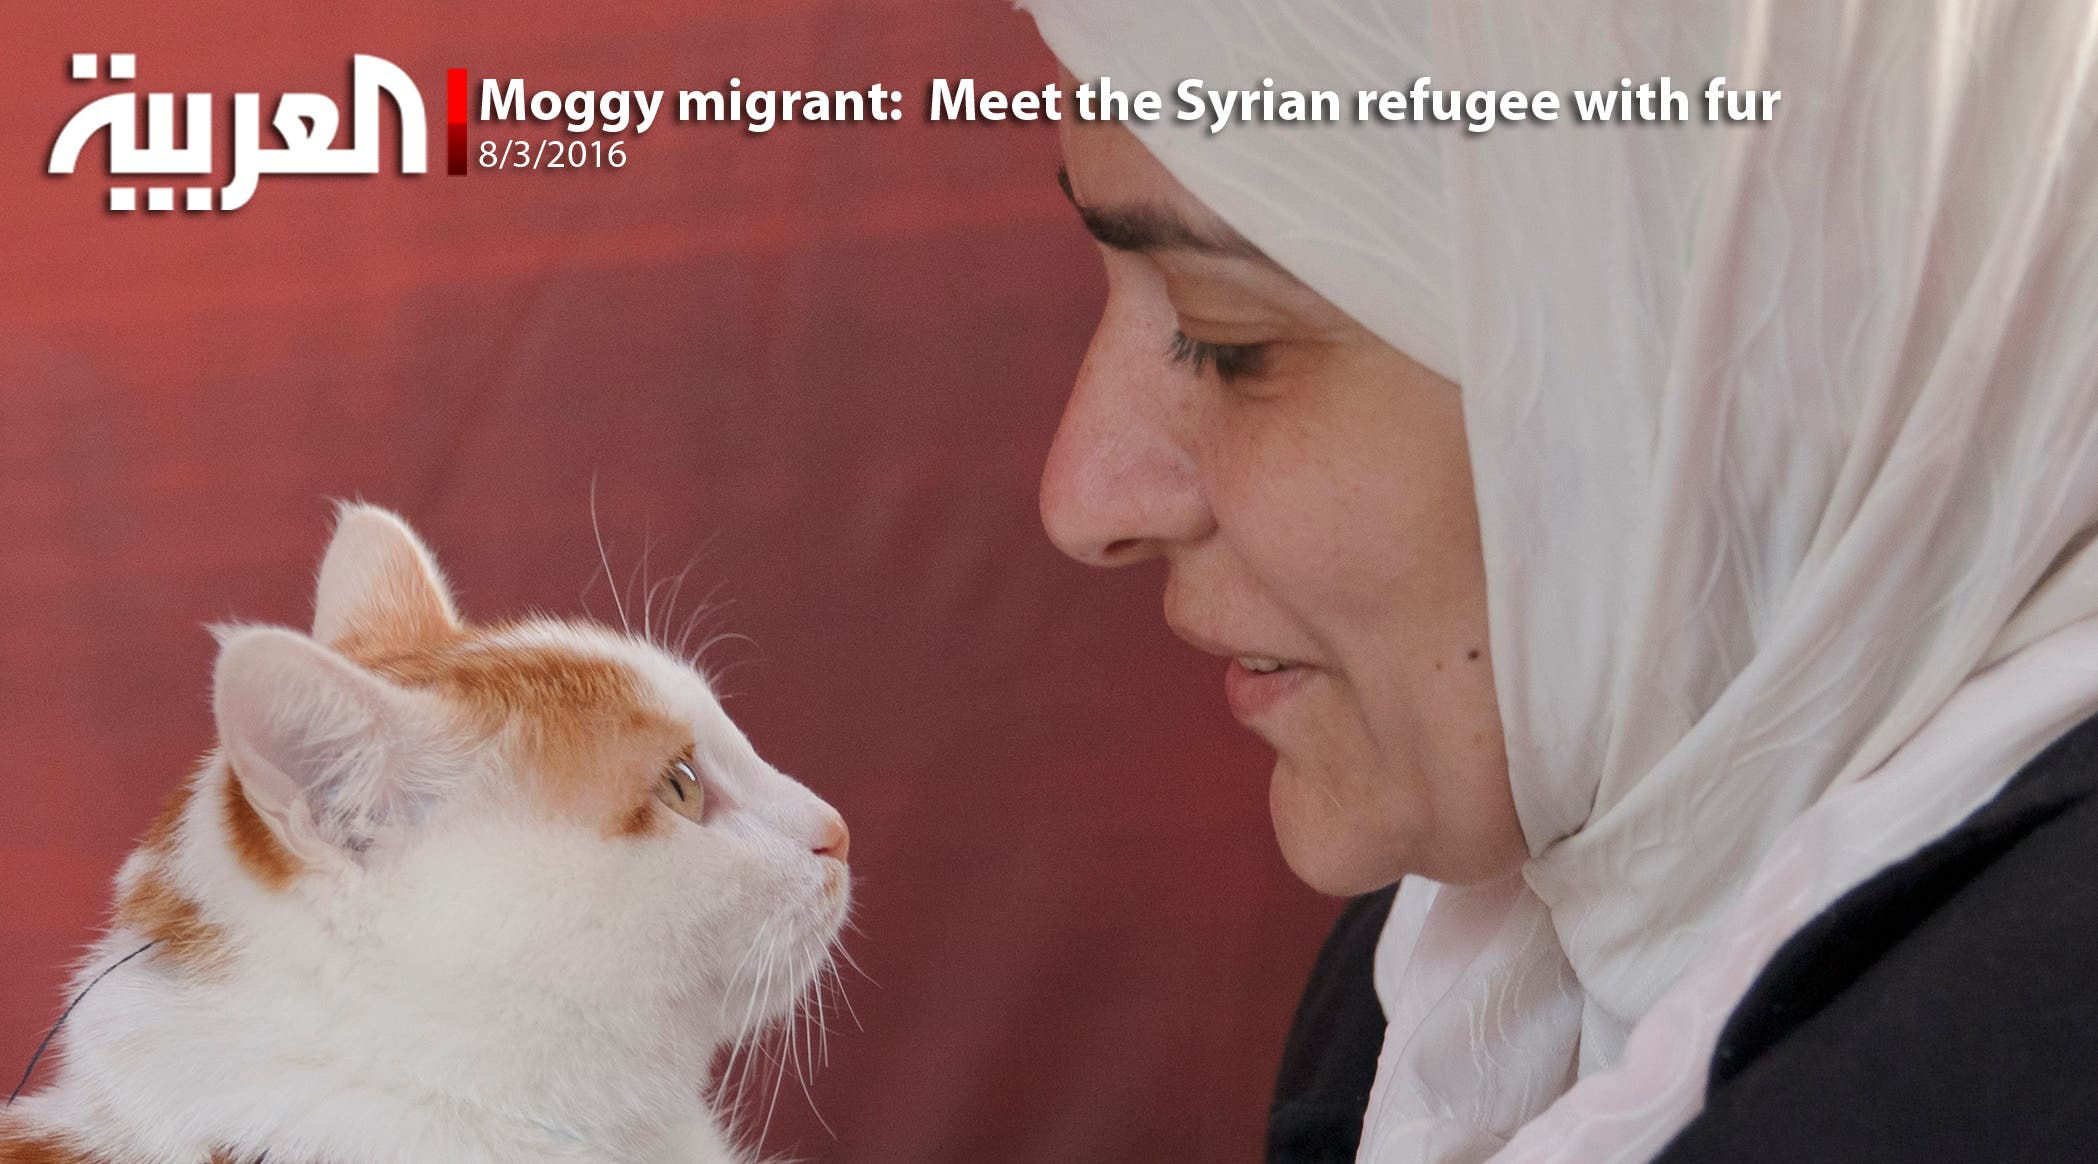 Moggy migrant:  Meet the Syrian refugee with fur